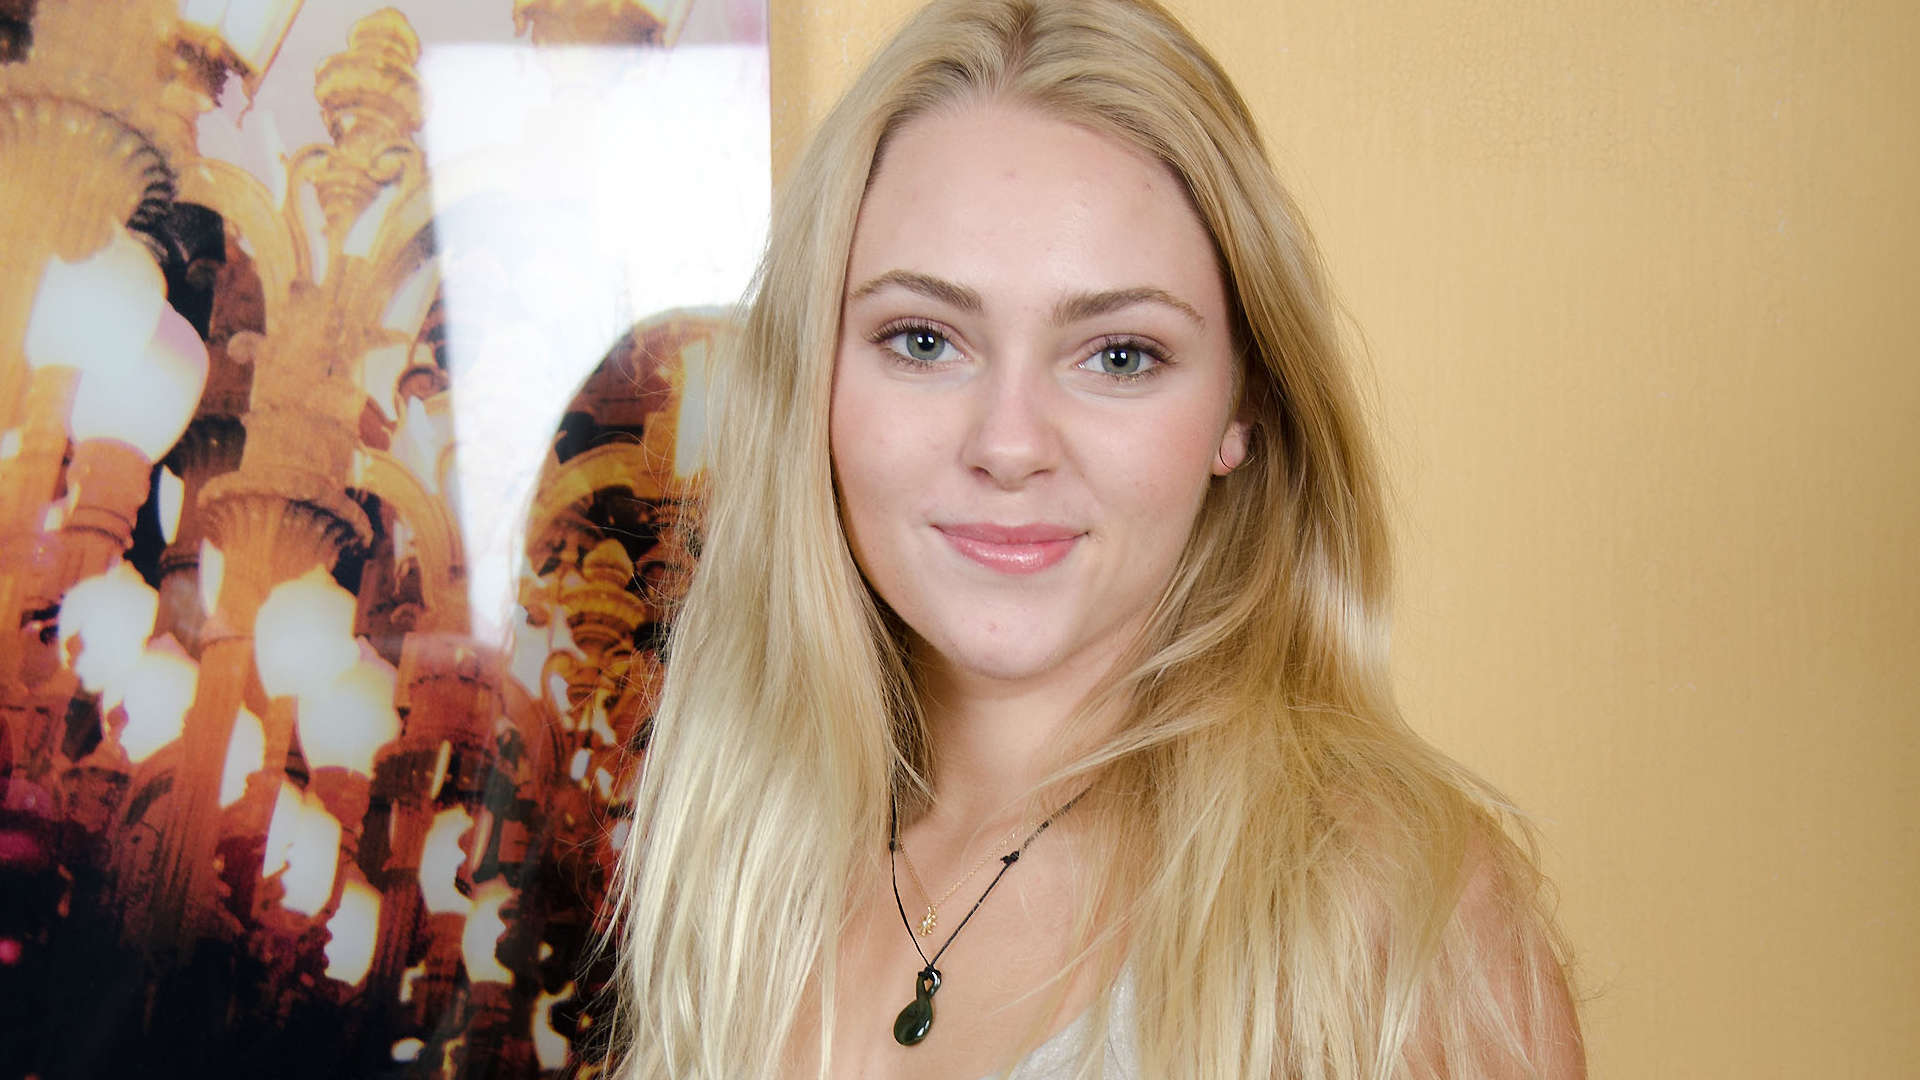 Annasophia robb desktop wallpapers dyrevelferdfo annasophia robb wallpapers images photos pictures backgrounds thecheapjerseys Image collections